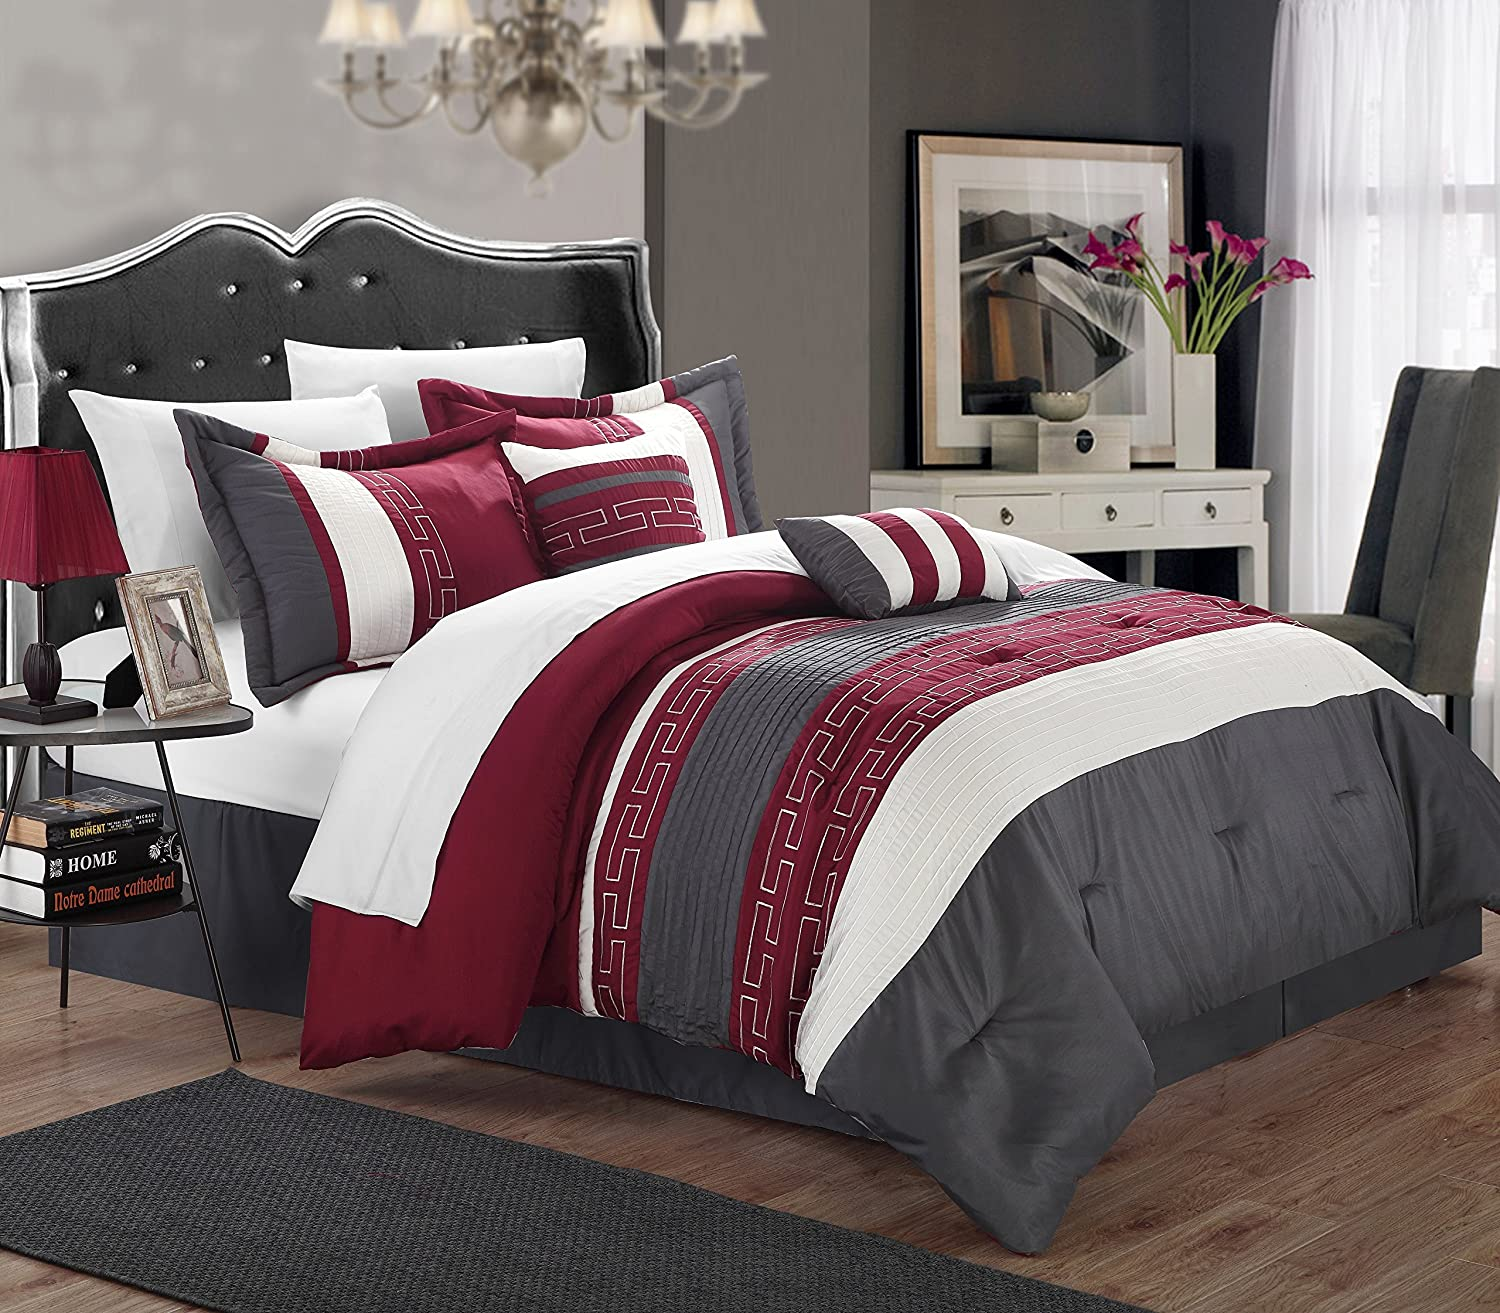 Amazoncom Chic Home Carlton 6 Piece Comforter Set